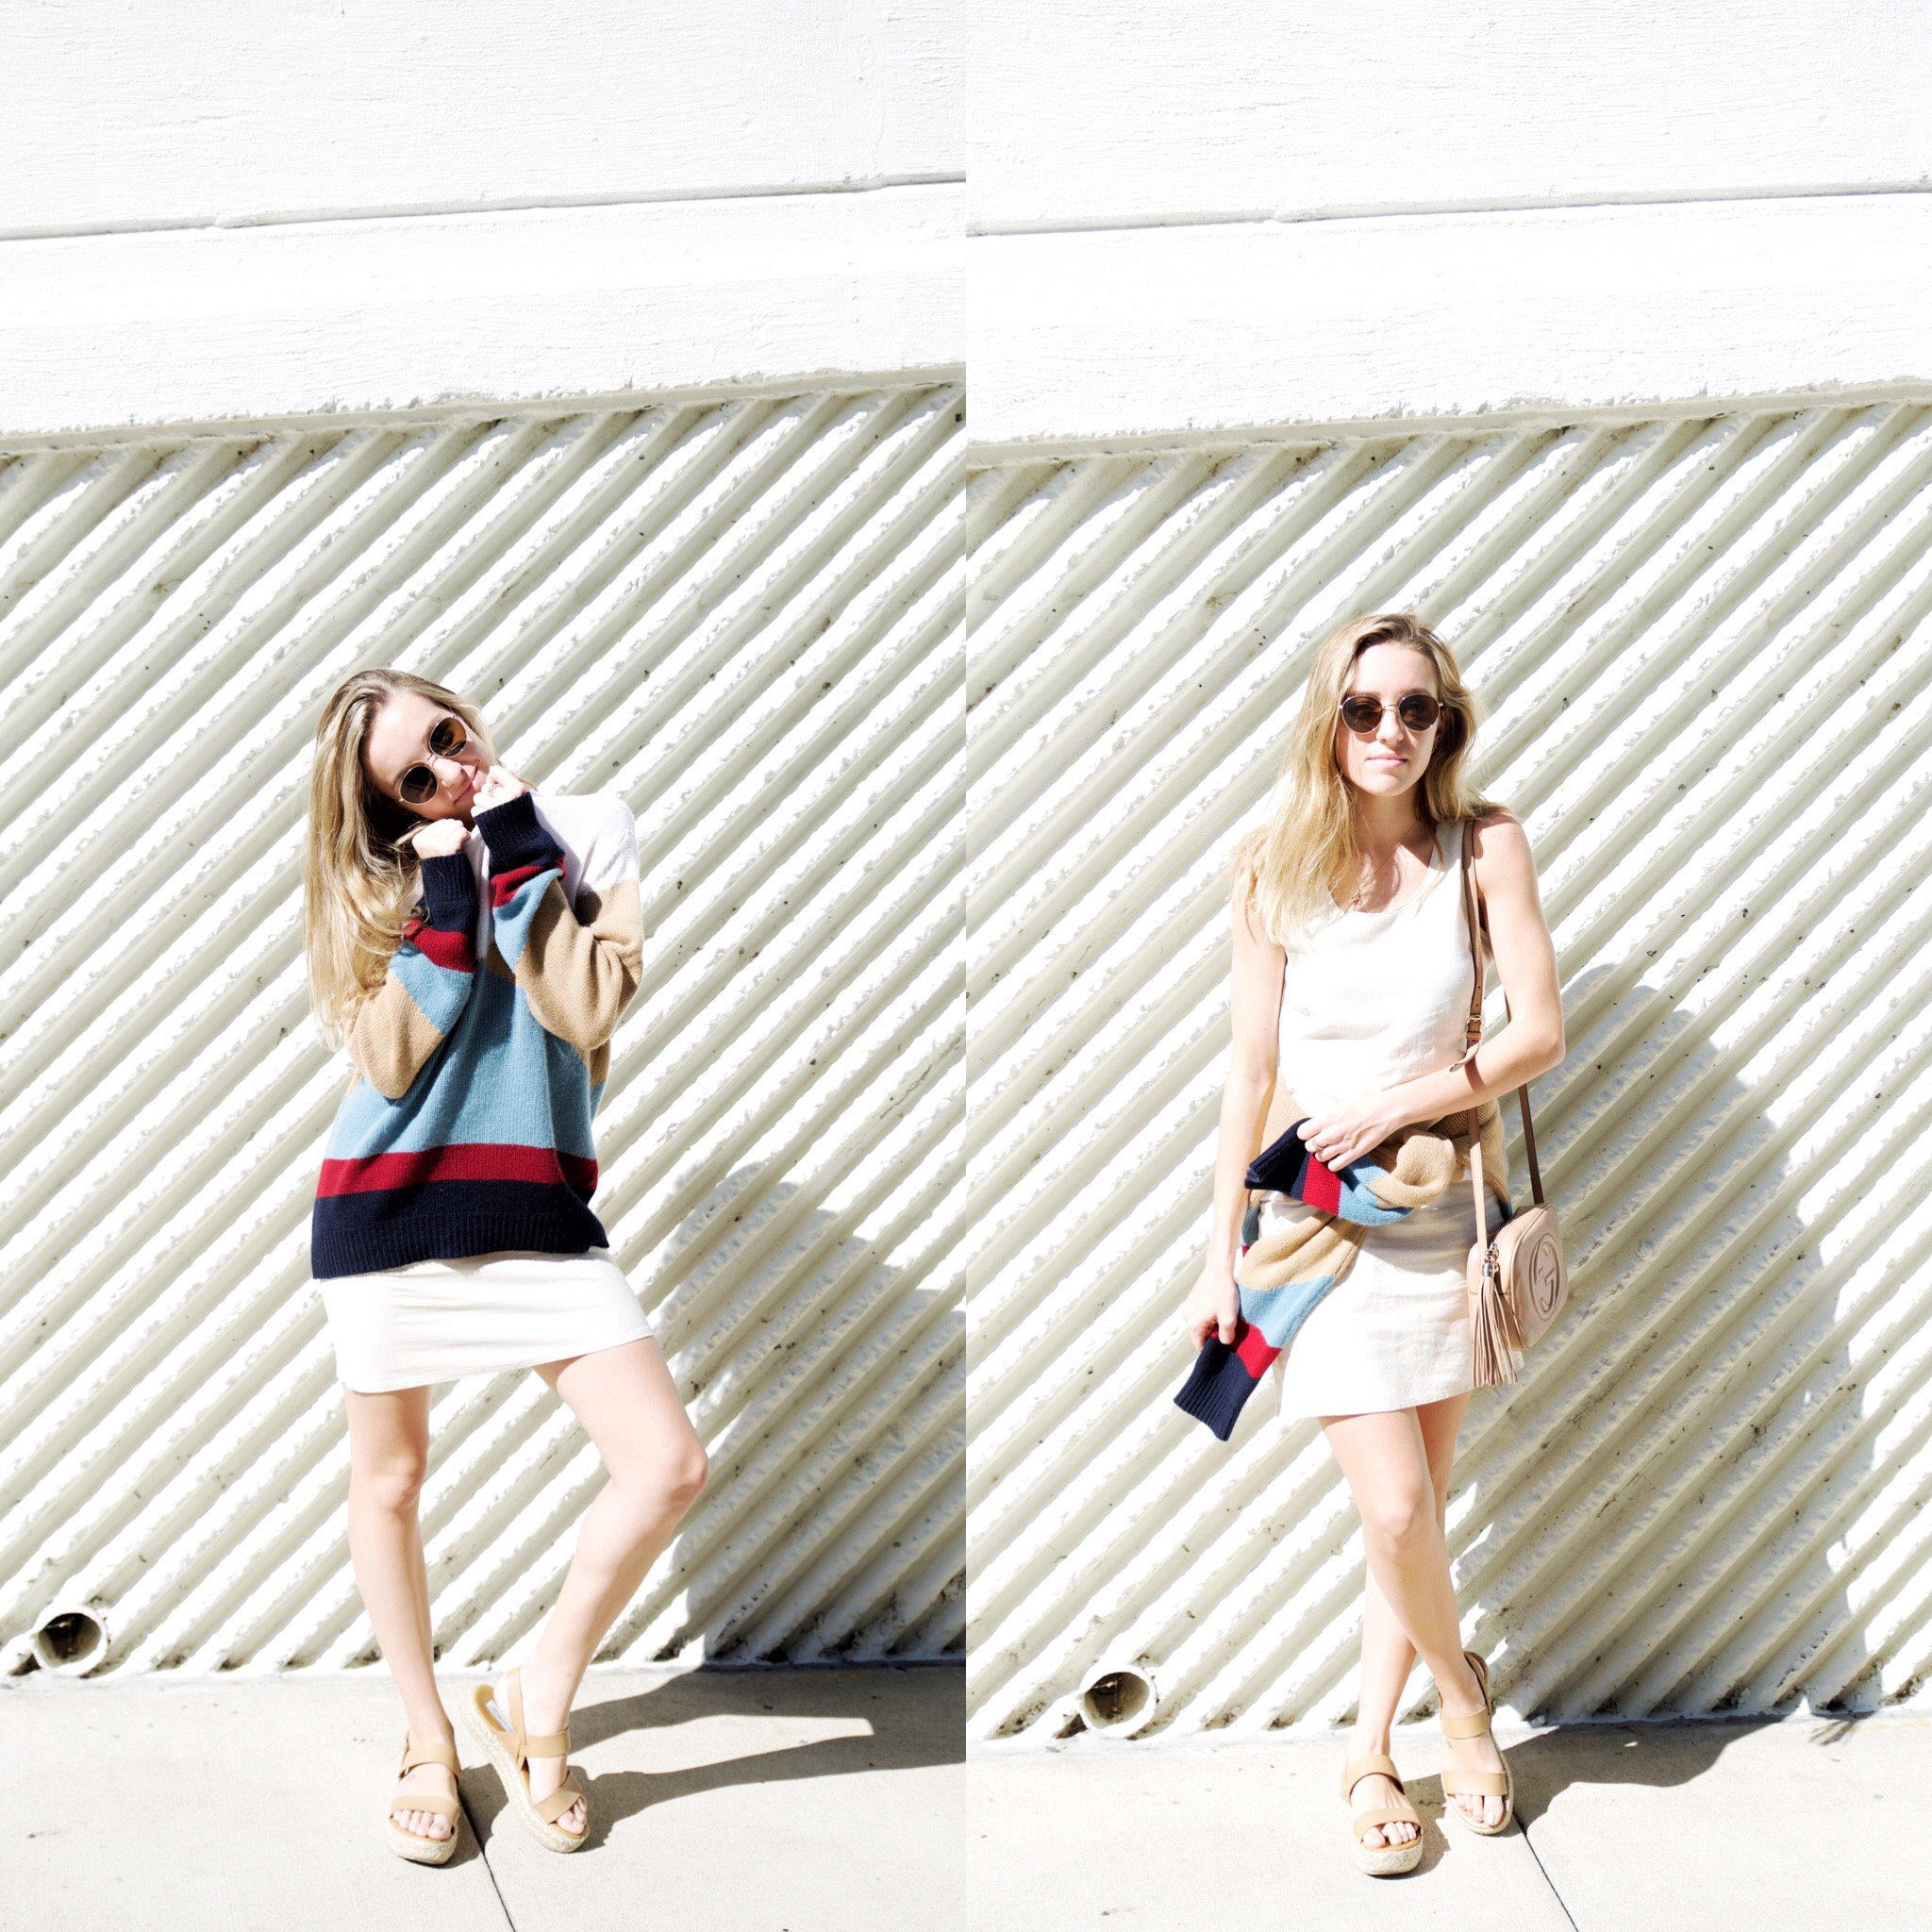 sweater: valentino, dress: topknot vintage, bag: gucci, shoes: steve madden, sunglasses: madewell